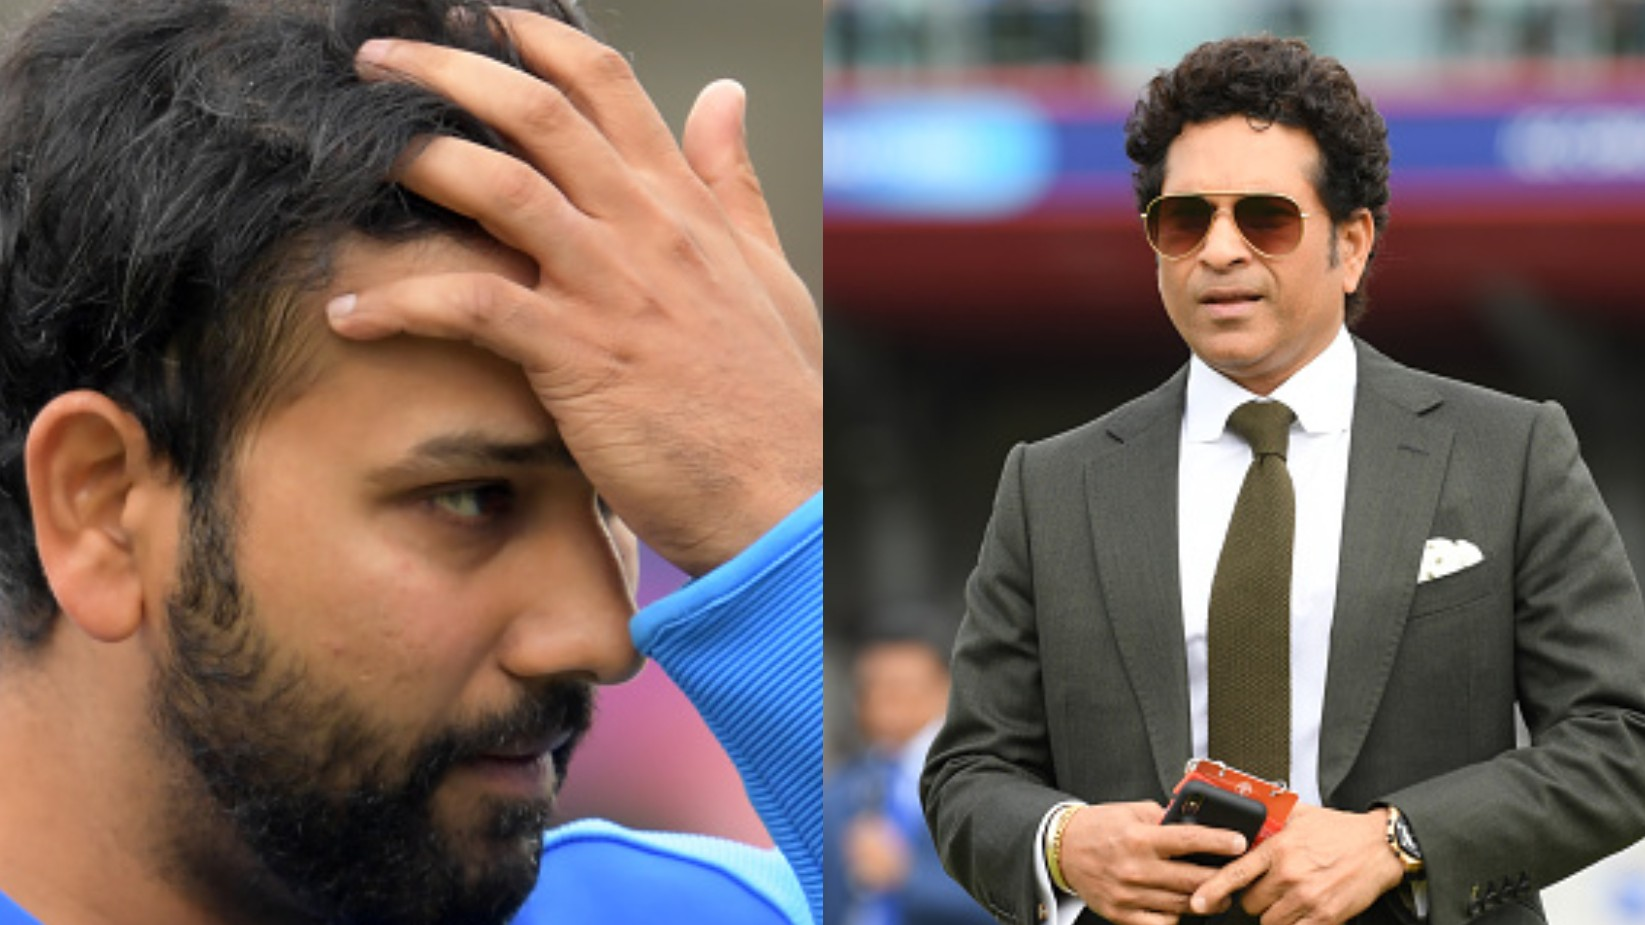 CWC 2019: Sachin Tendulkar says that he feels bad for Rohit Sharma; mentions time is the best healer